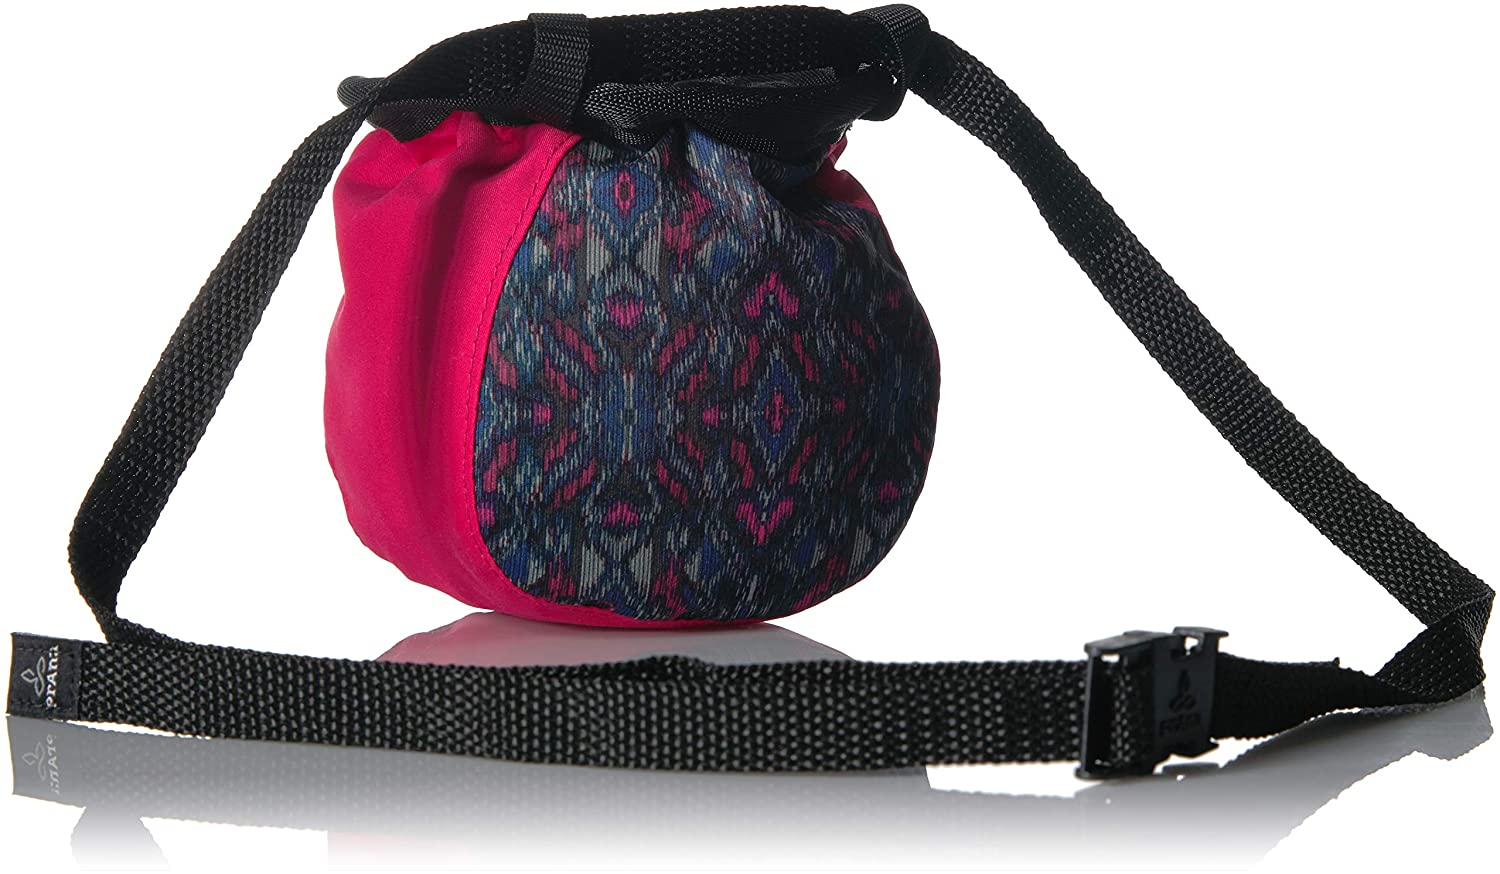 Sapphire Flores prAna Womens Large Womens Chalk Bag With Belt One Size